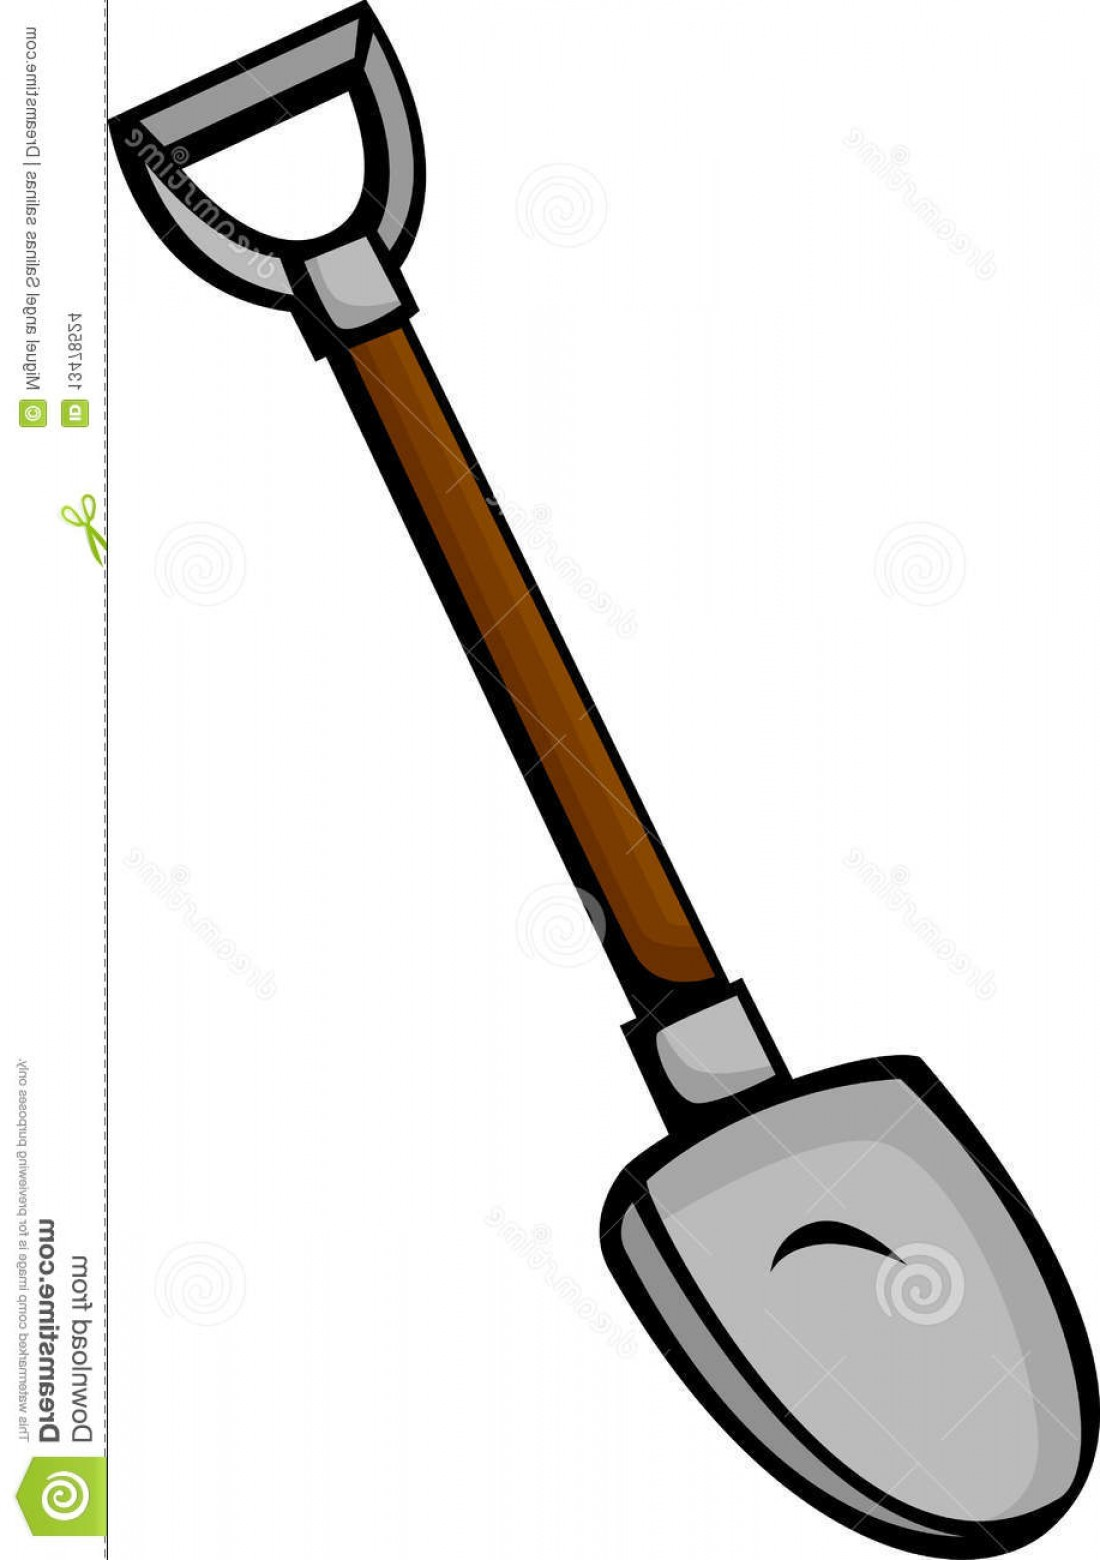 Shovel Vector: Stock Images Shovel Vector Illustration Image